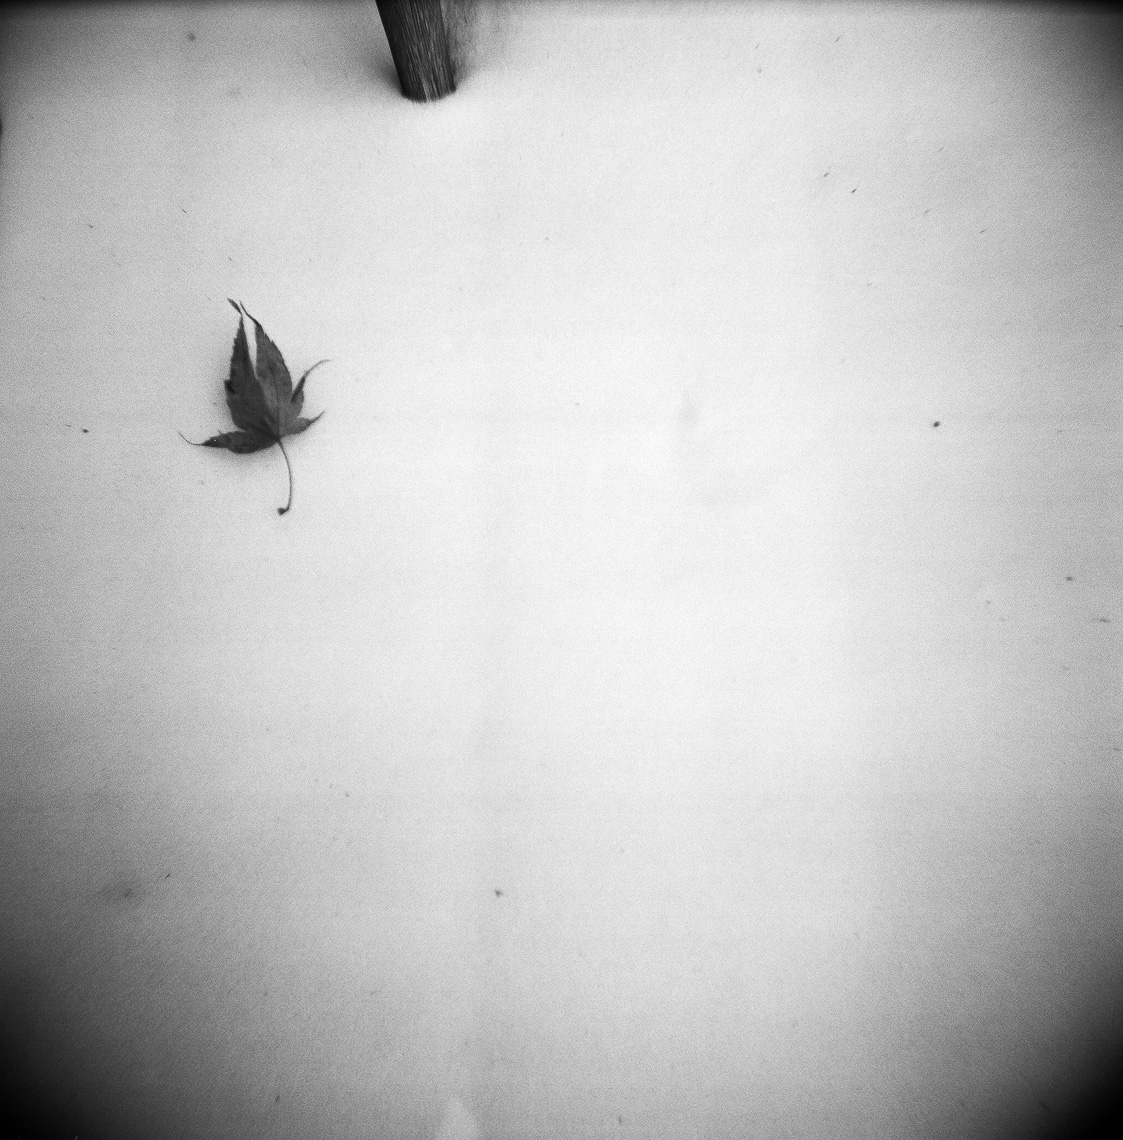 2013-14-PROJECTS-HOLGA-400-1_Ilford-Delta_TIW_scans-003-Edit-2